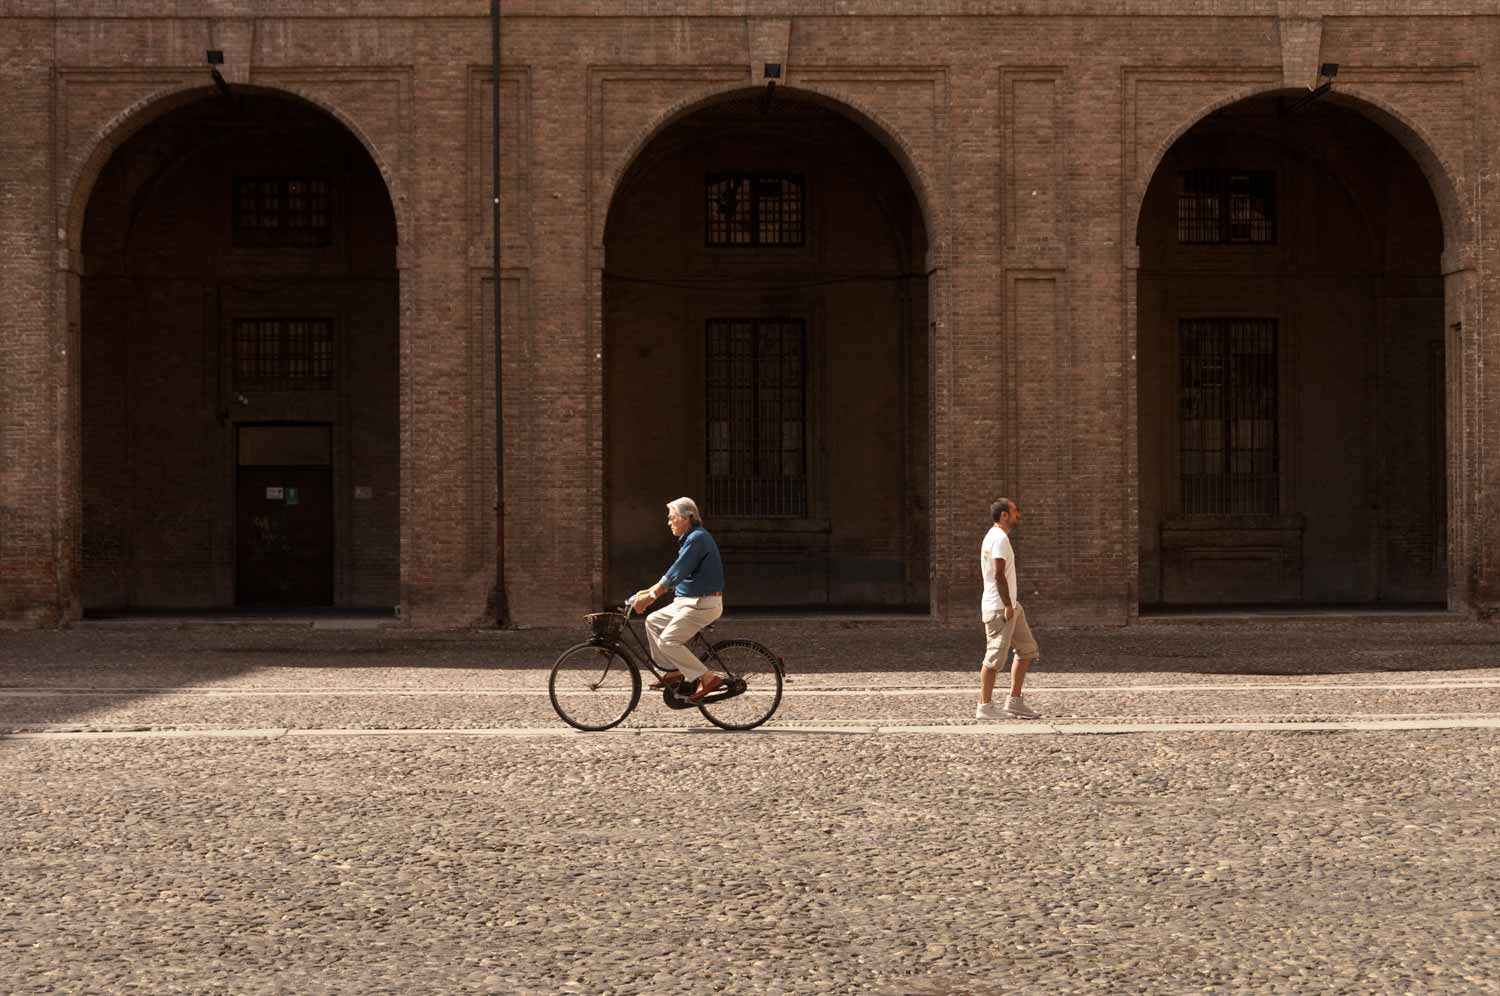 In the internal courtyard, a cyclist passes a pedestrian headed for Parco Ducale.